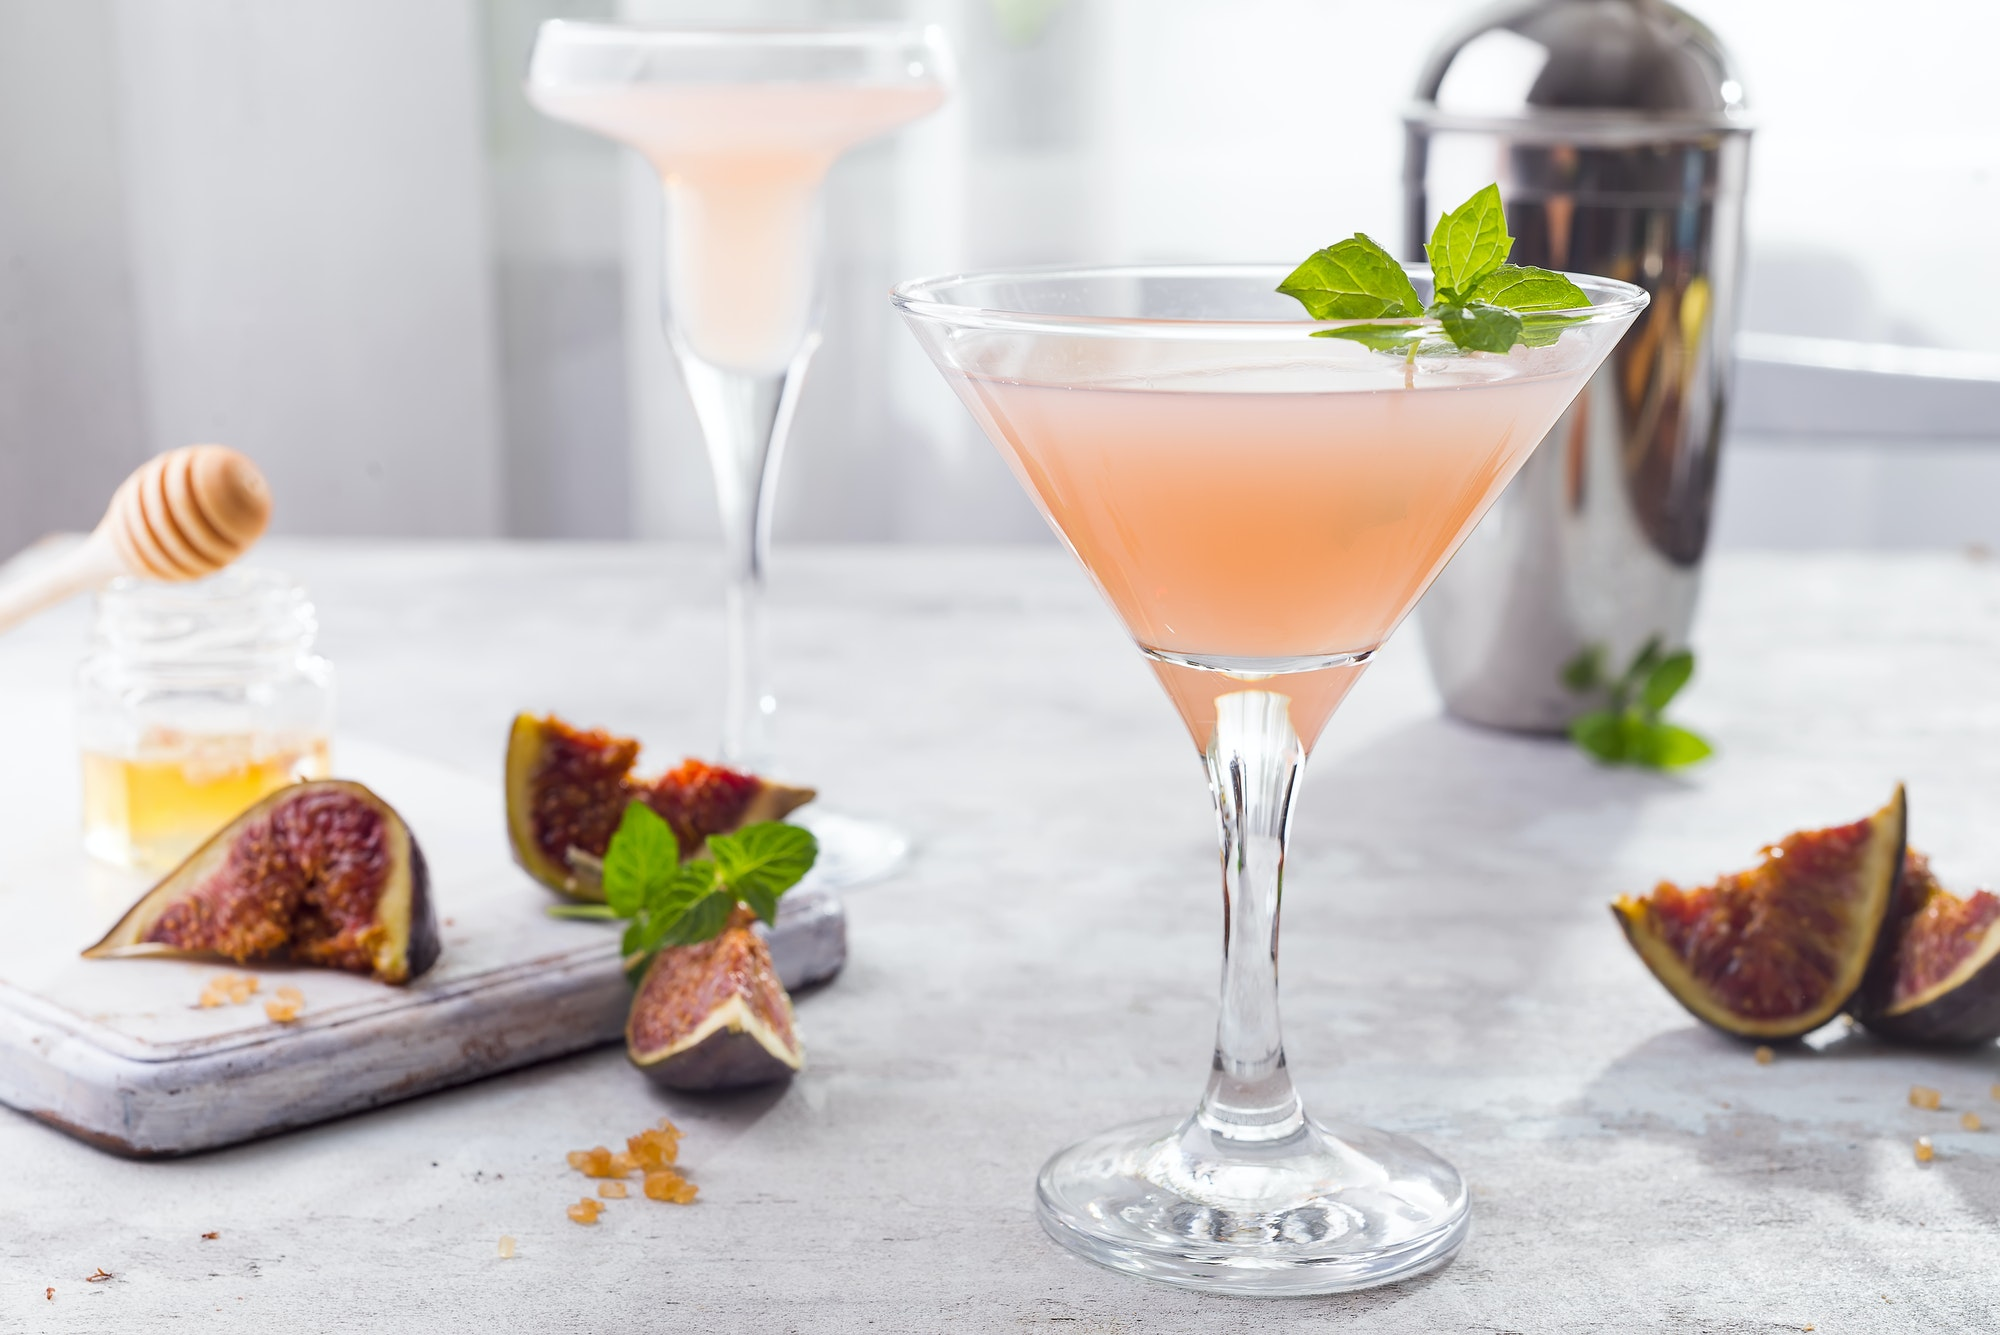 Sparkling pink lemonade martini with figs and honey on light background over windows